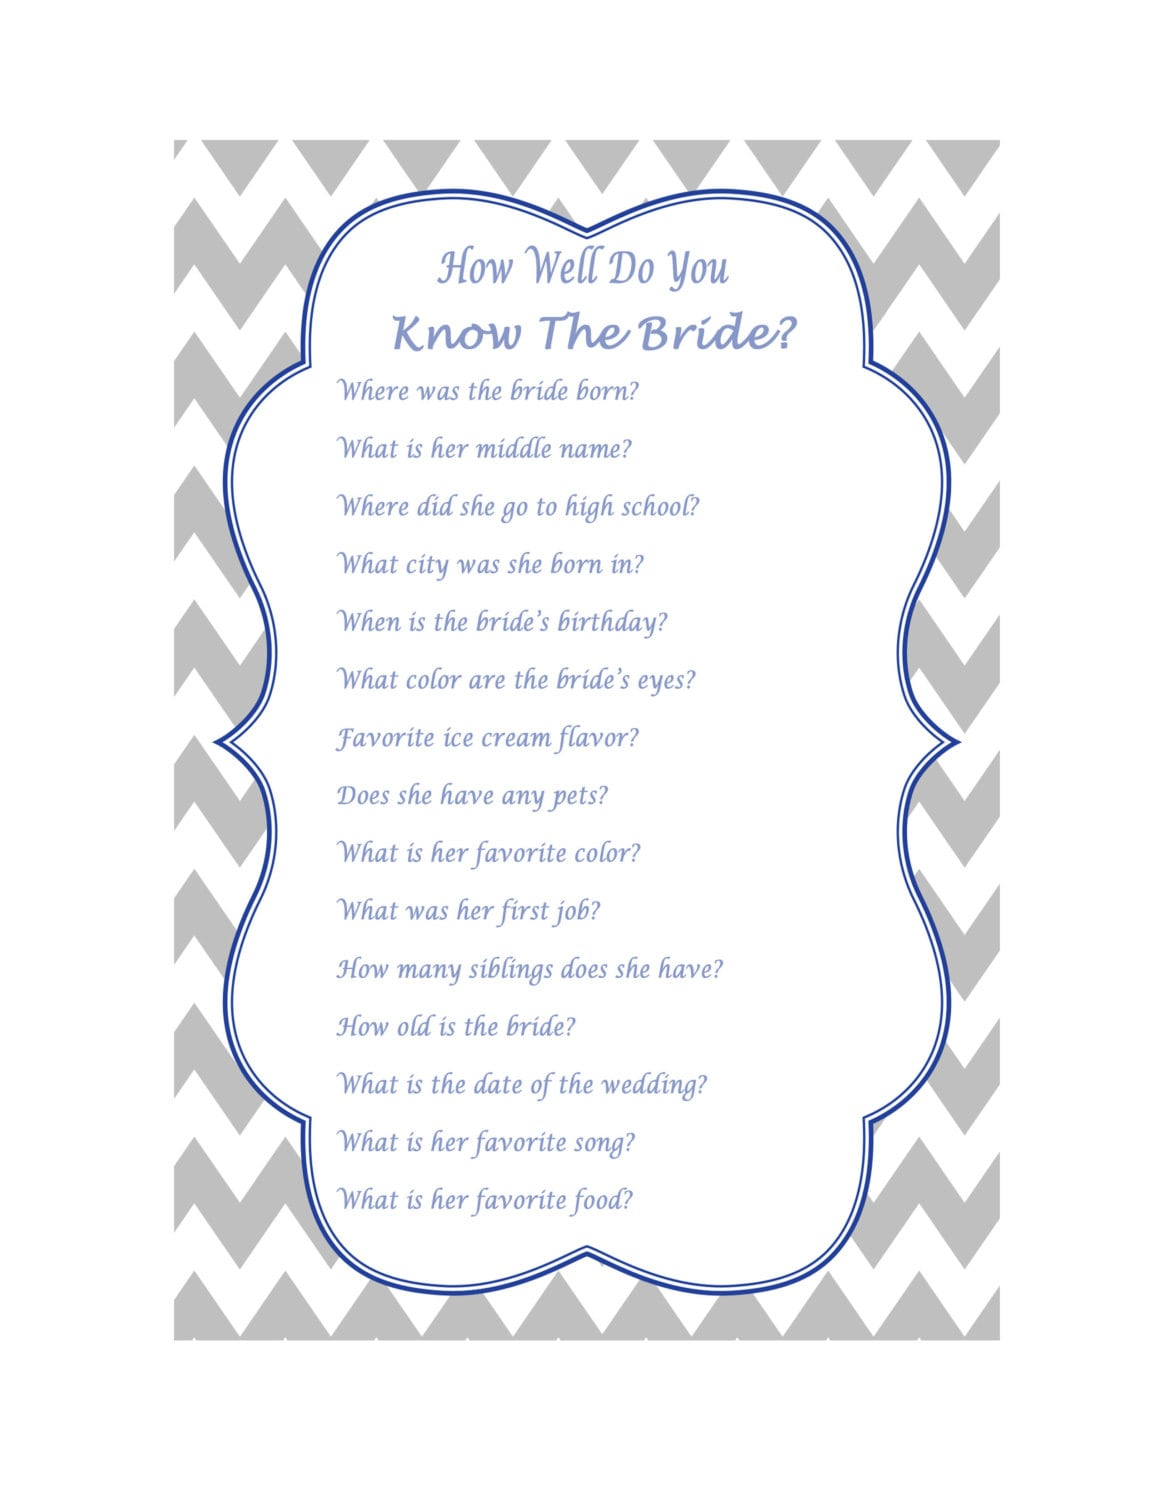 How Well Do You Know The Bride Wedding Quiz Wedding Trivia Etsy